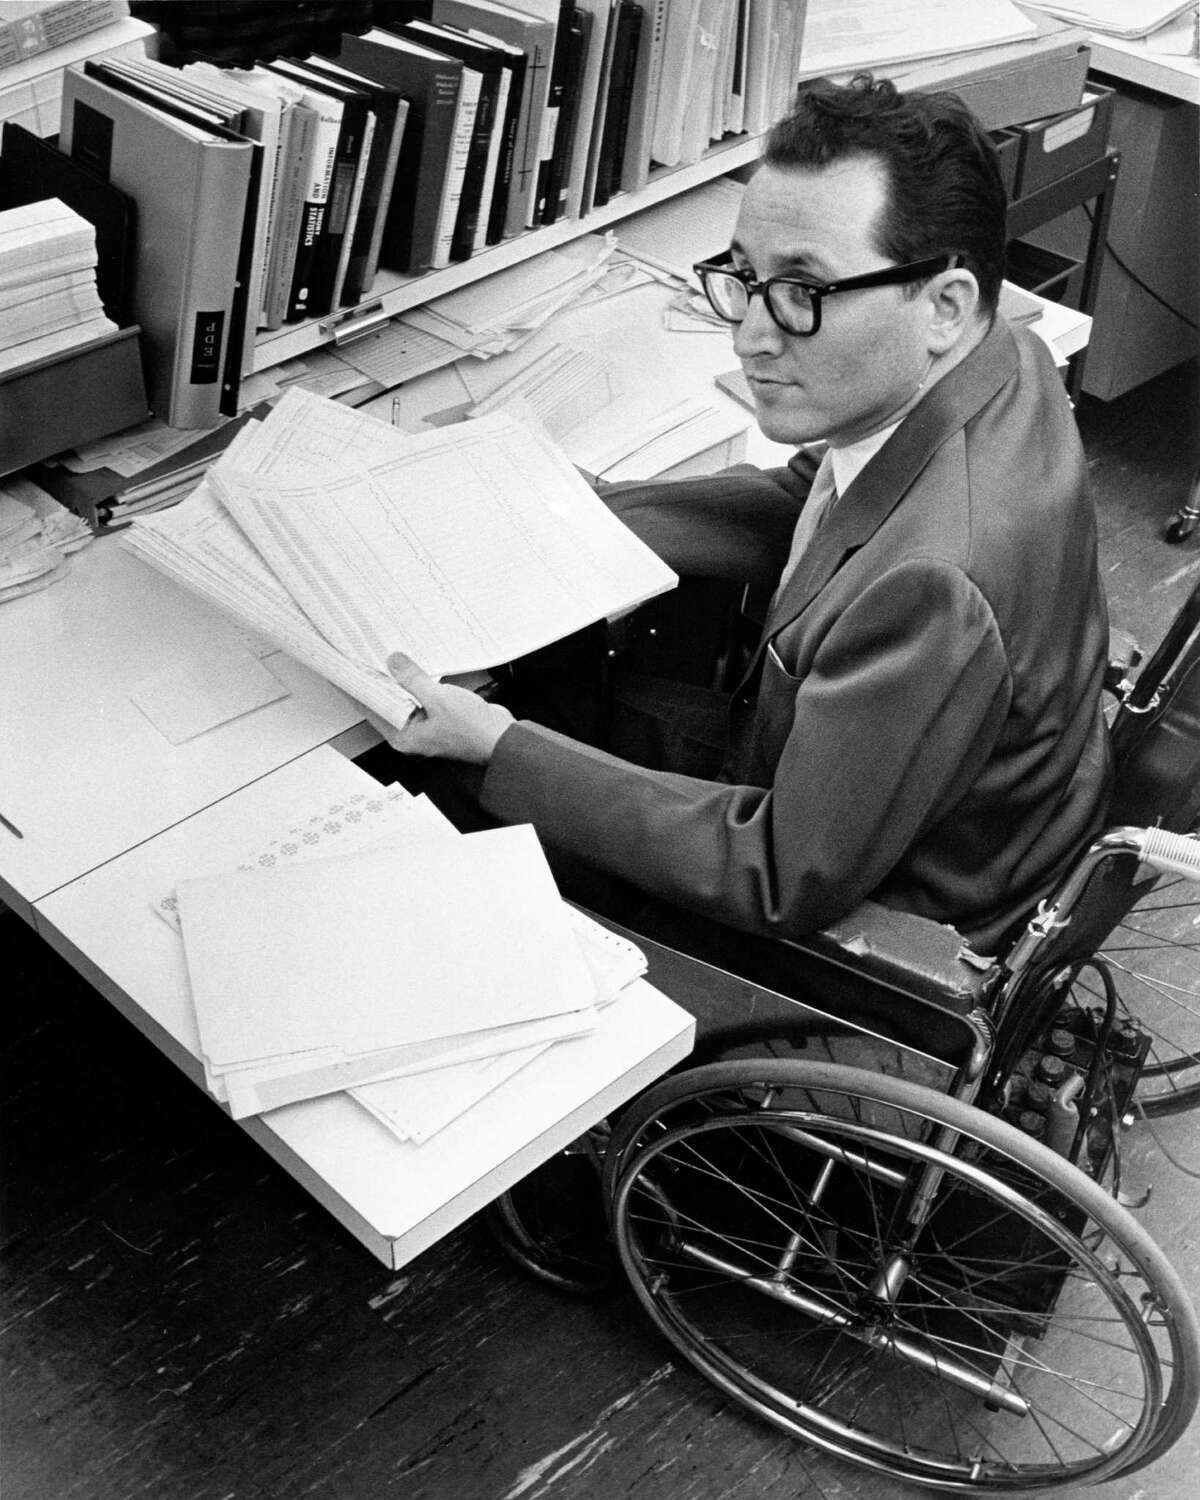 01/1963 - Morris Burns Jr., assistant to the director of the Biomathematics Research Laboratory at Baylor College of Medicine, holds computer printout results for patients at the Texas Institute for Rehabilitation and Research in Houston.